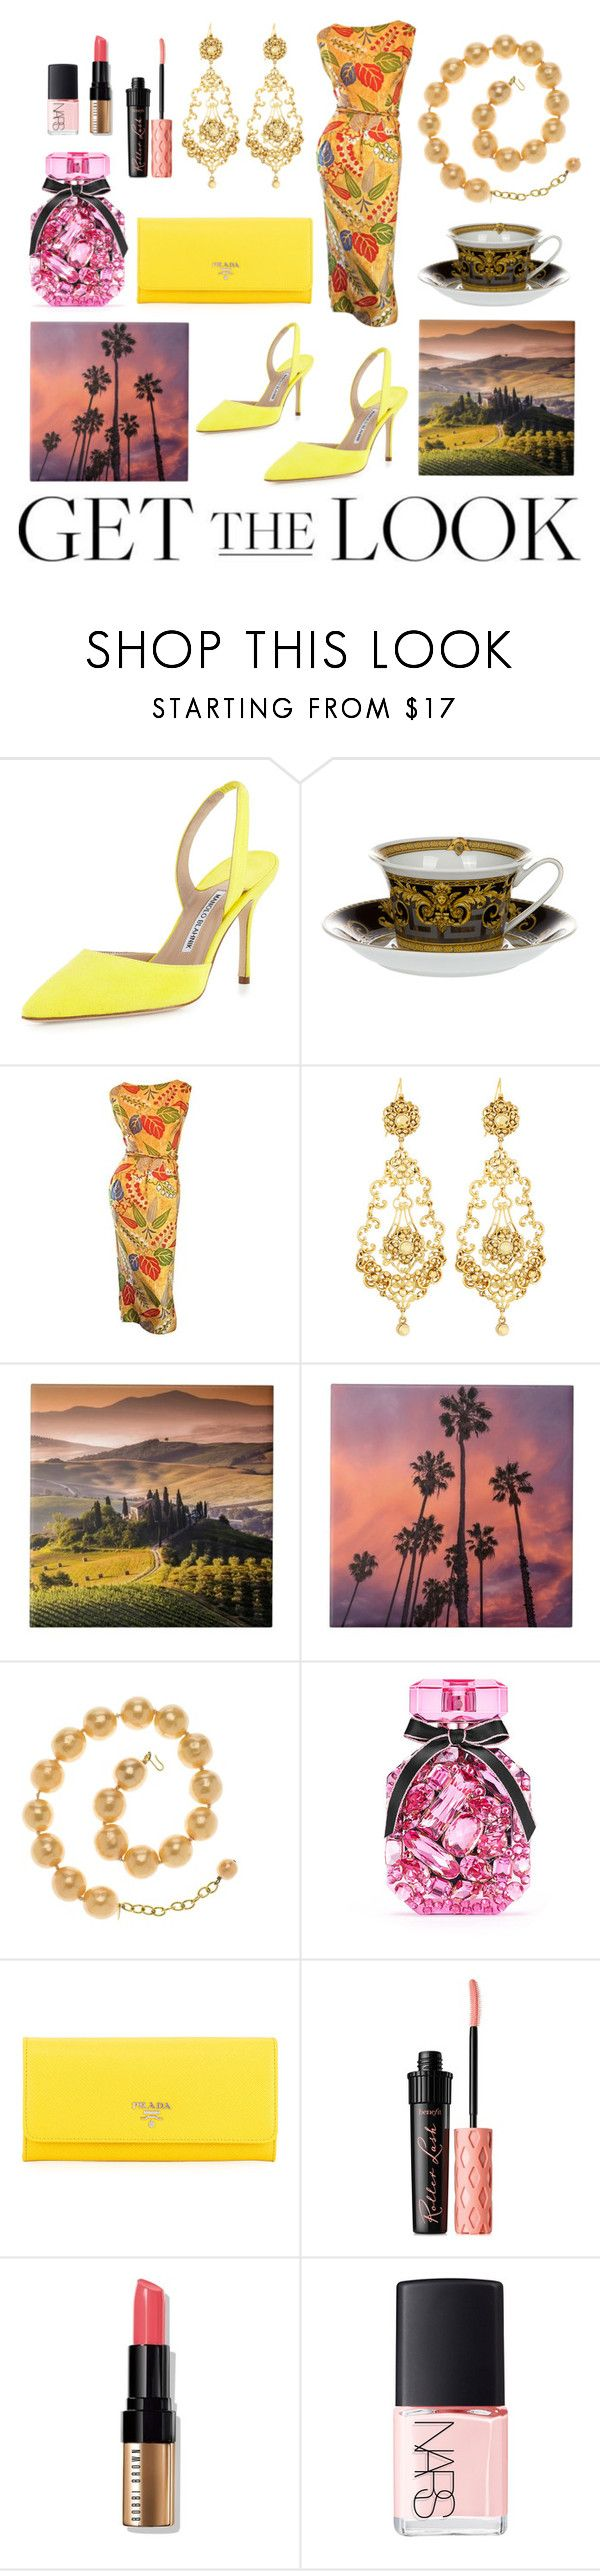 """Get the Look: Met Gala 2016"" by artpics ❤ liked on Polyvore featuring Manolo Blahnik, Versace, Adele Simpson, Jose & Maria Barrera, Chanel, Victoria's Secret, Prada, Benefit, Bobbi Brown Cosmetics and NARS Cosmetics"